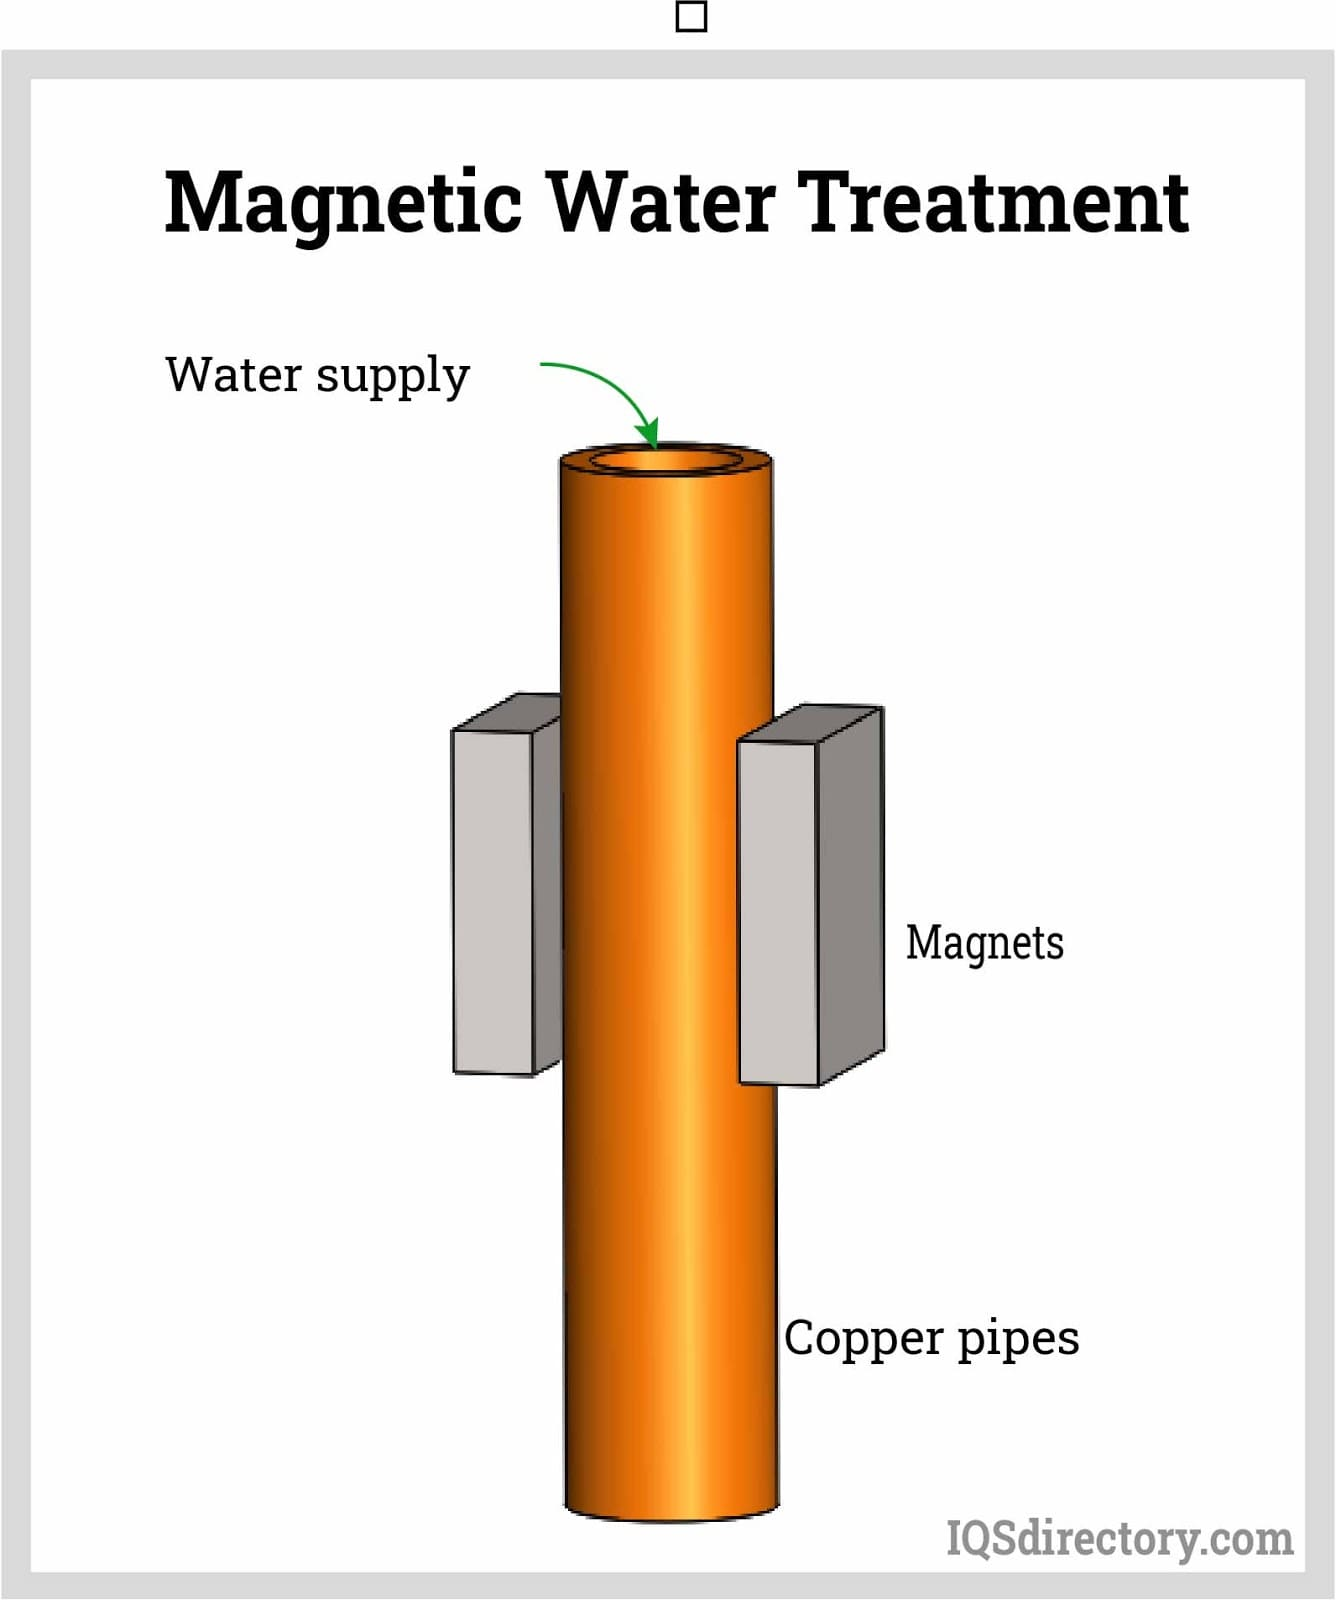 Magnetic Water Treatment